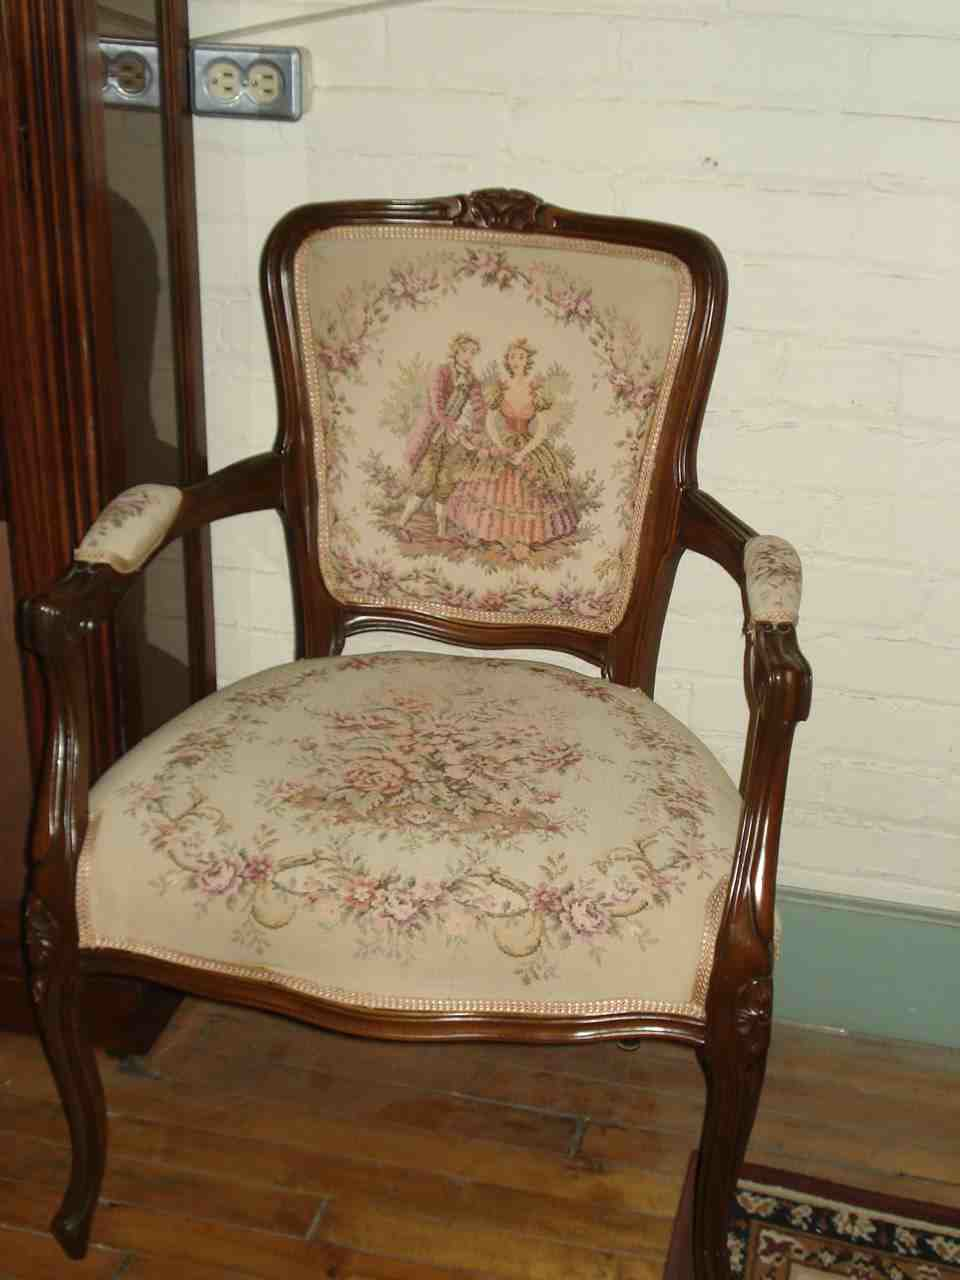 Tapestry Furniture   Of Attractively Upholstered Arm Chairs In A Victorian  Motif Tapestry .